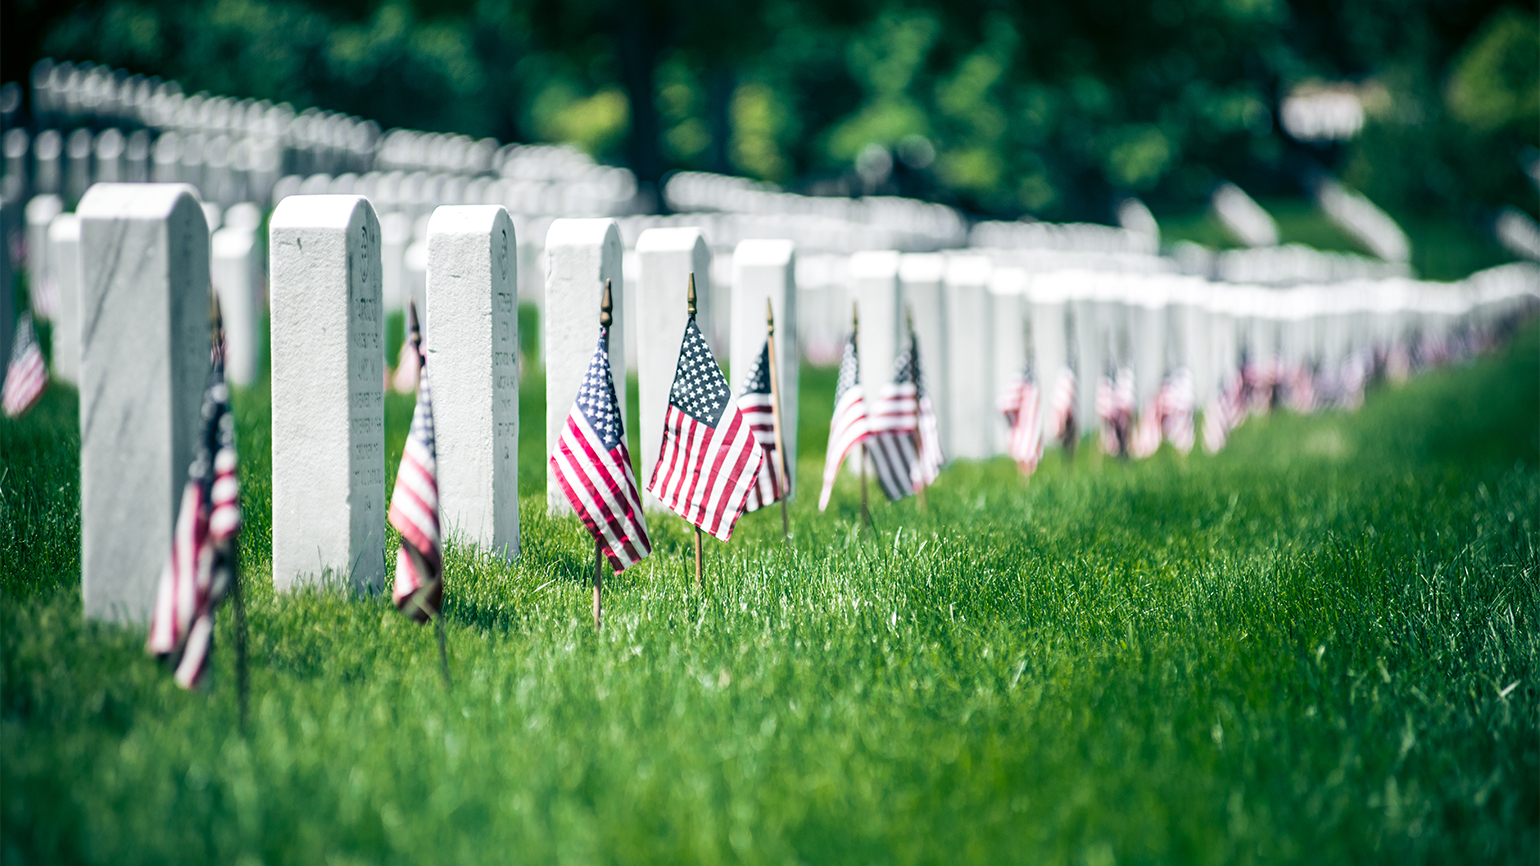 The grave markers of fallen heroes